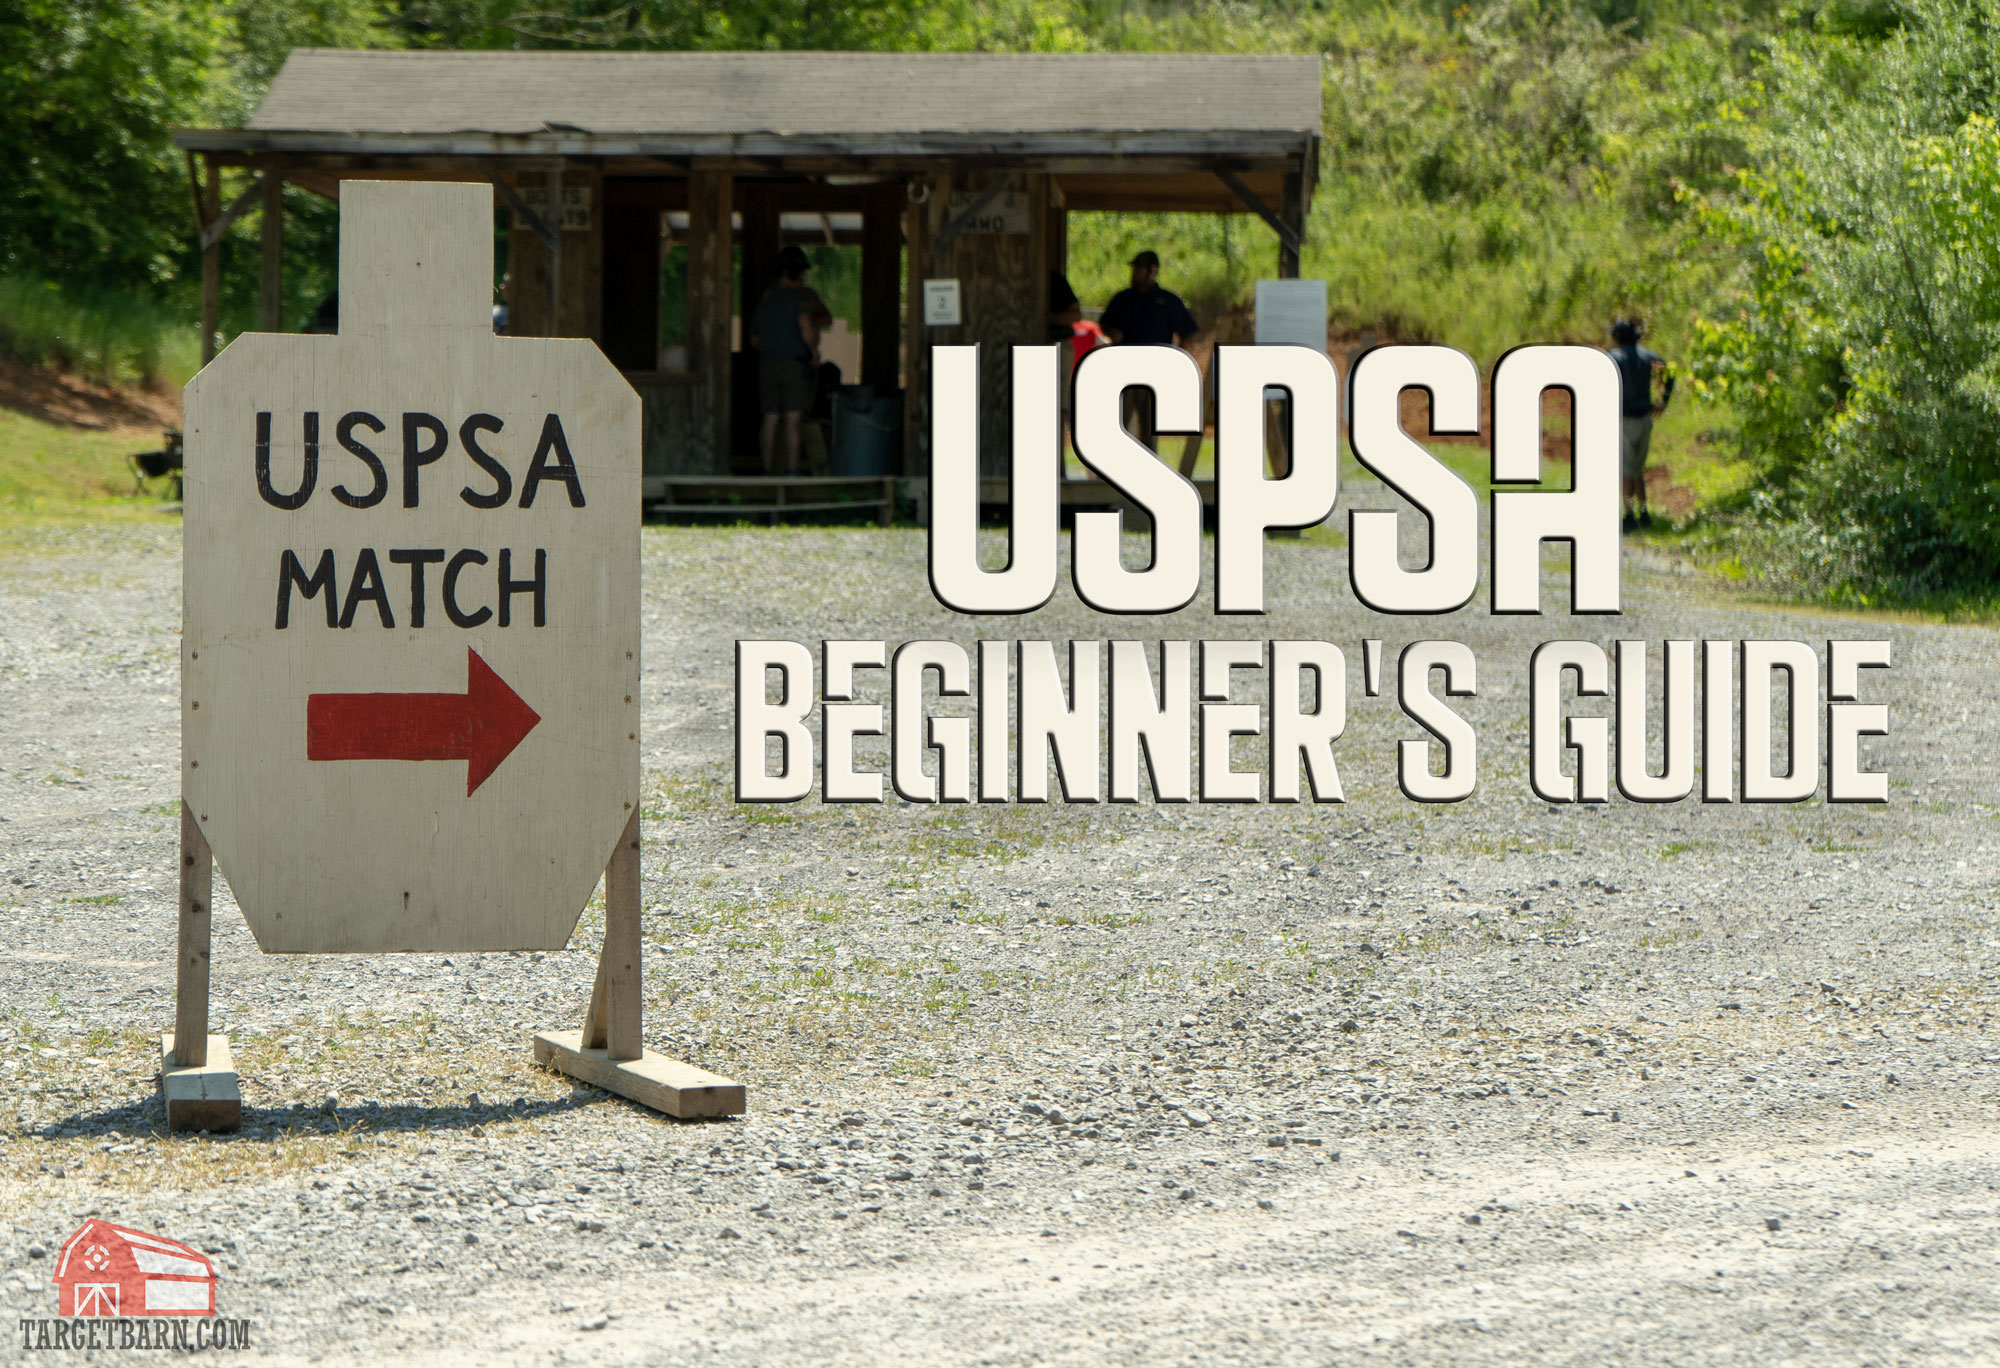 uspsa beginner's guide hero image